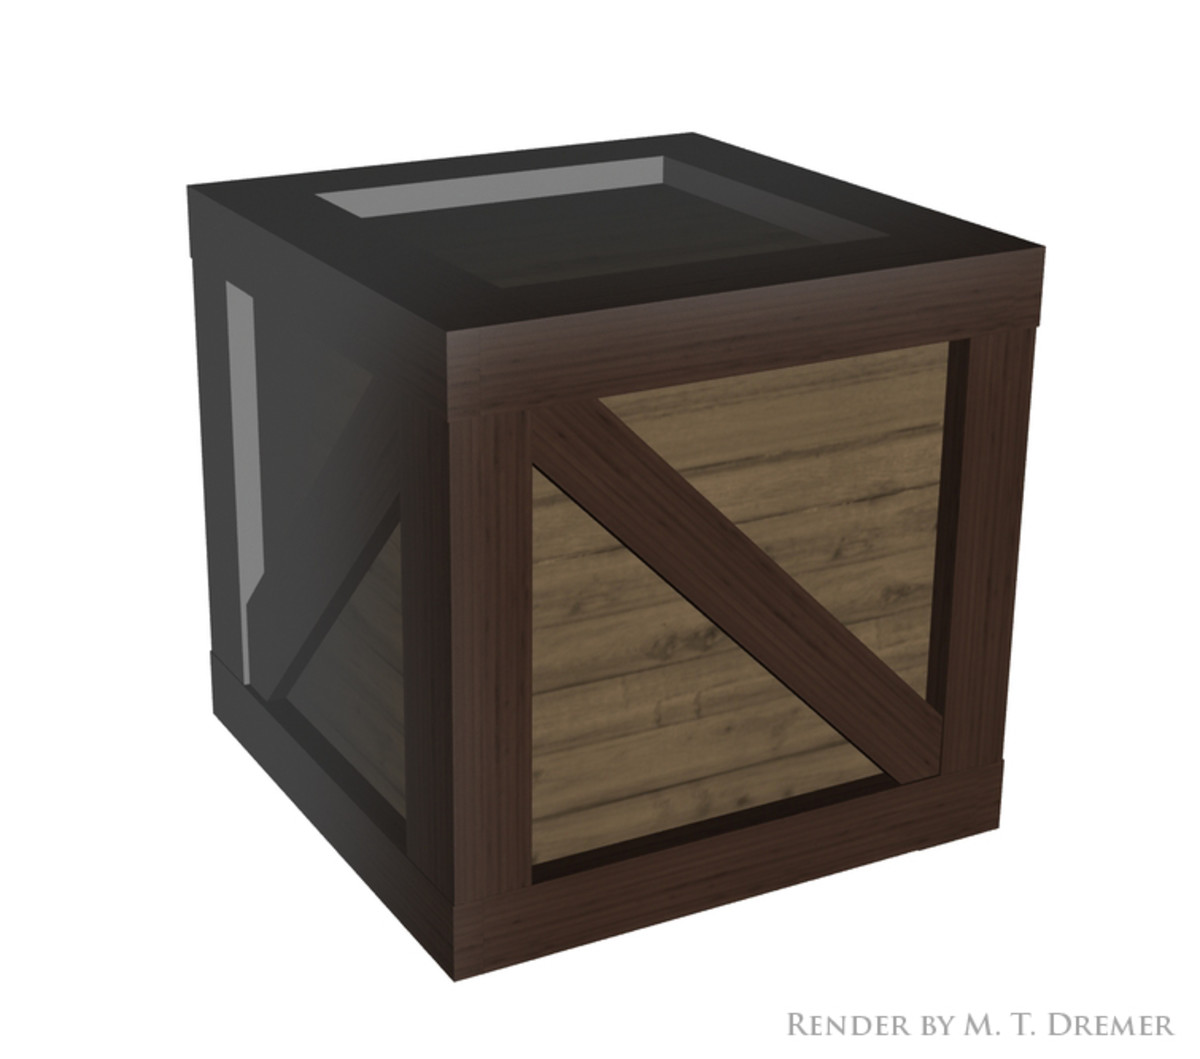 This crate is made entirely out of primitive cubes.